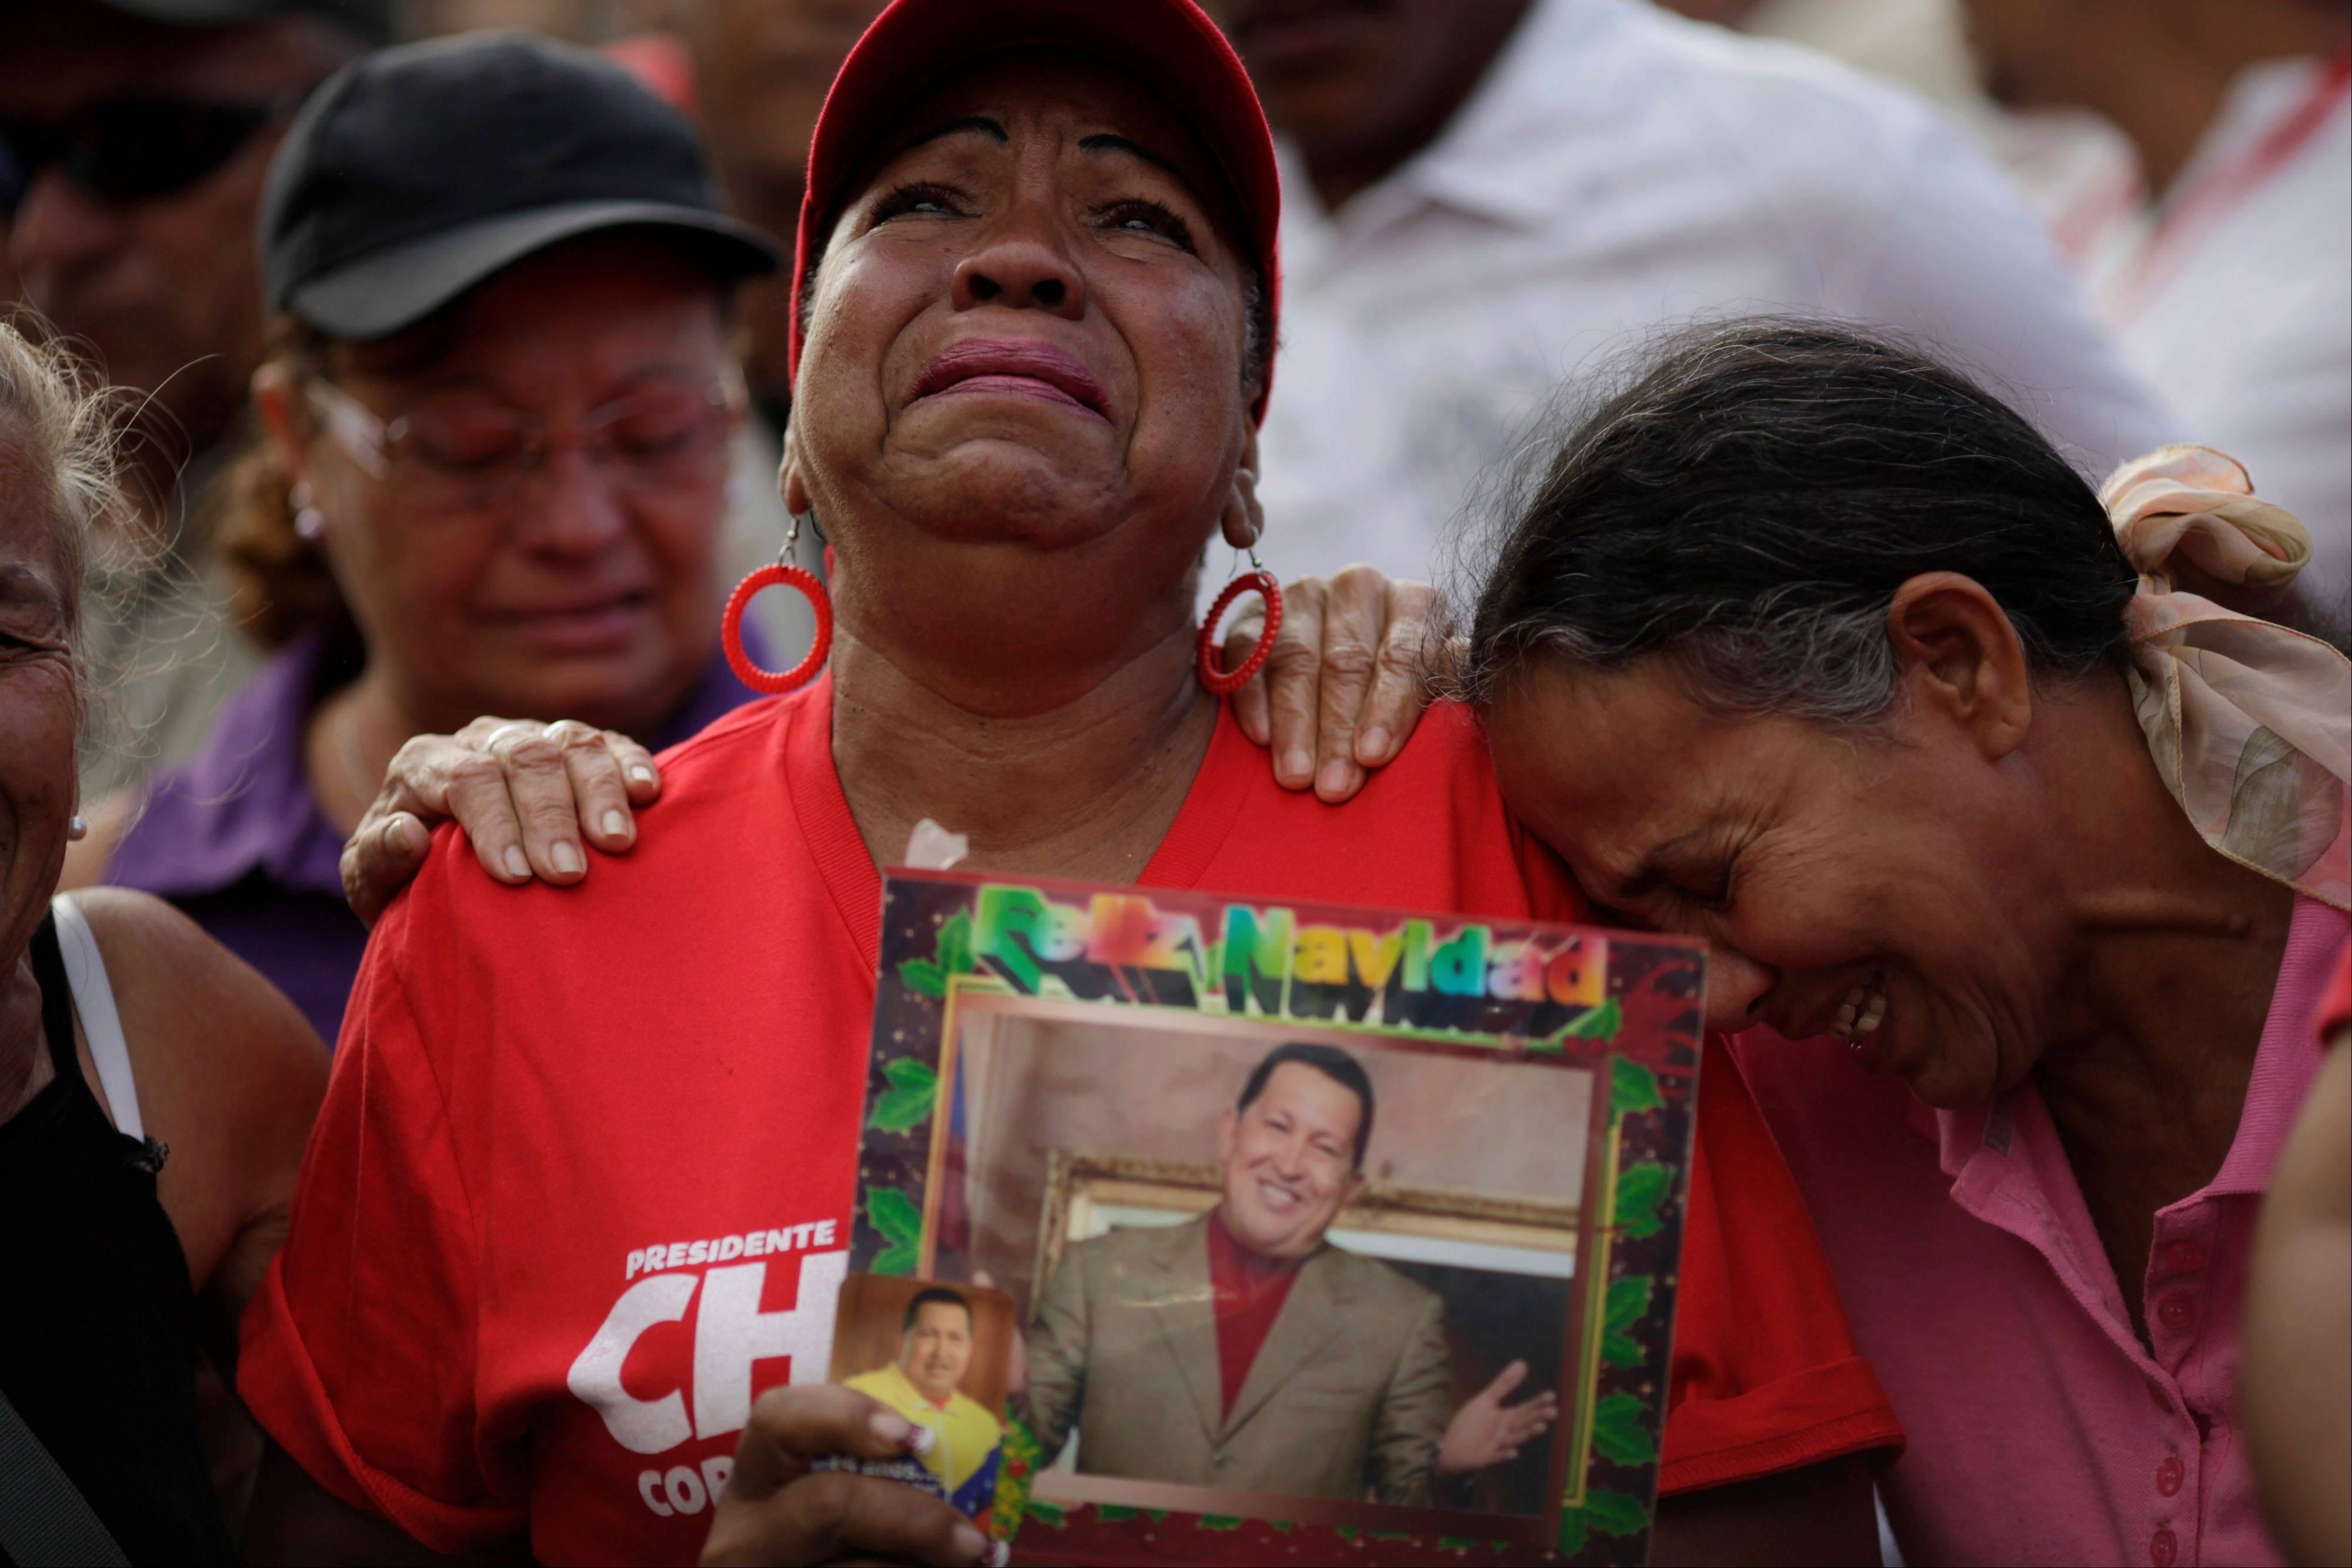 A day of tears after Chavez death in Venezuela